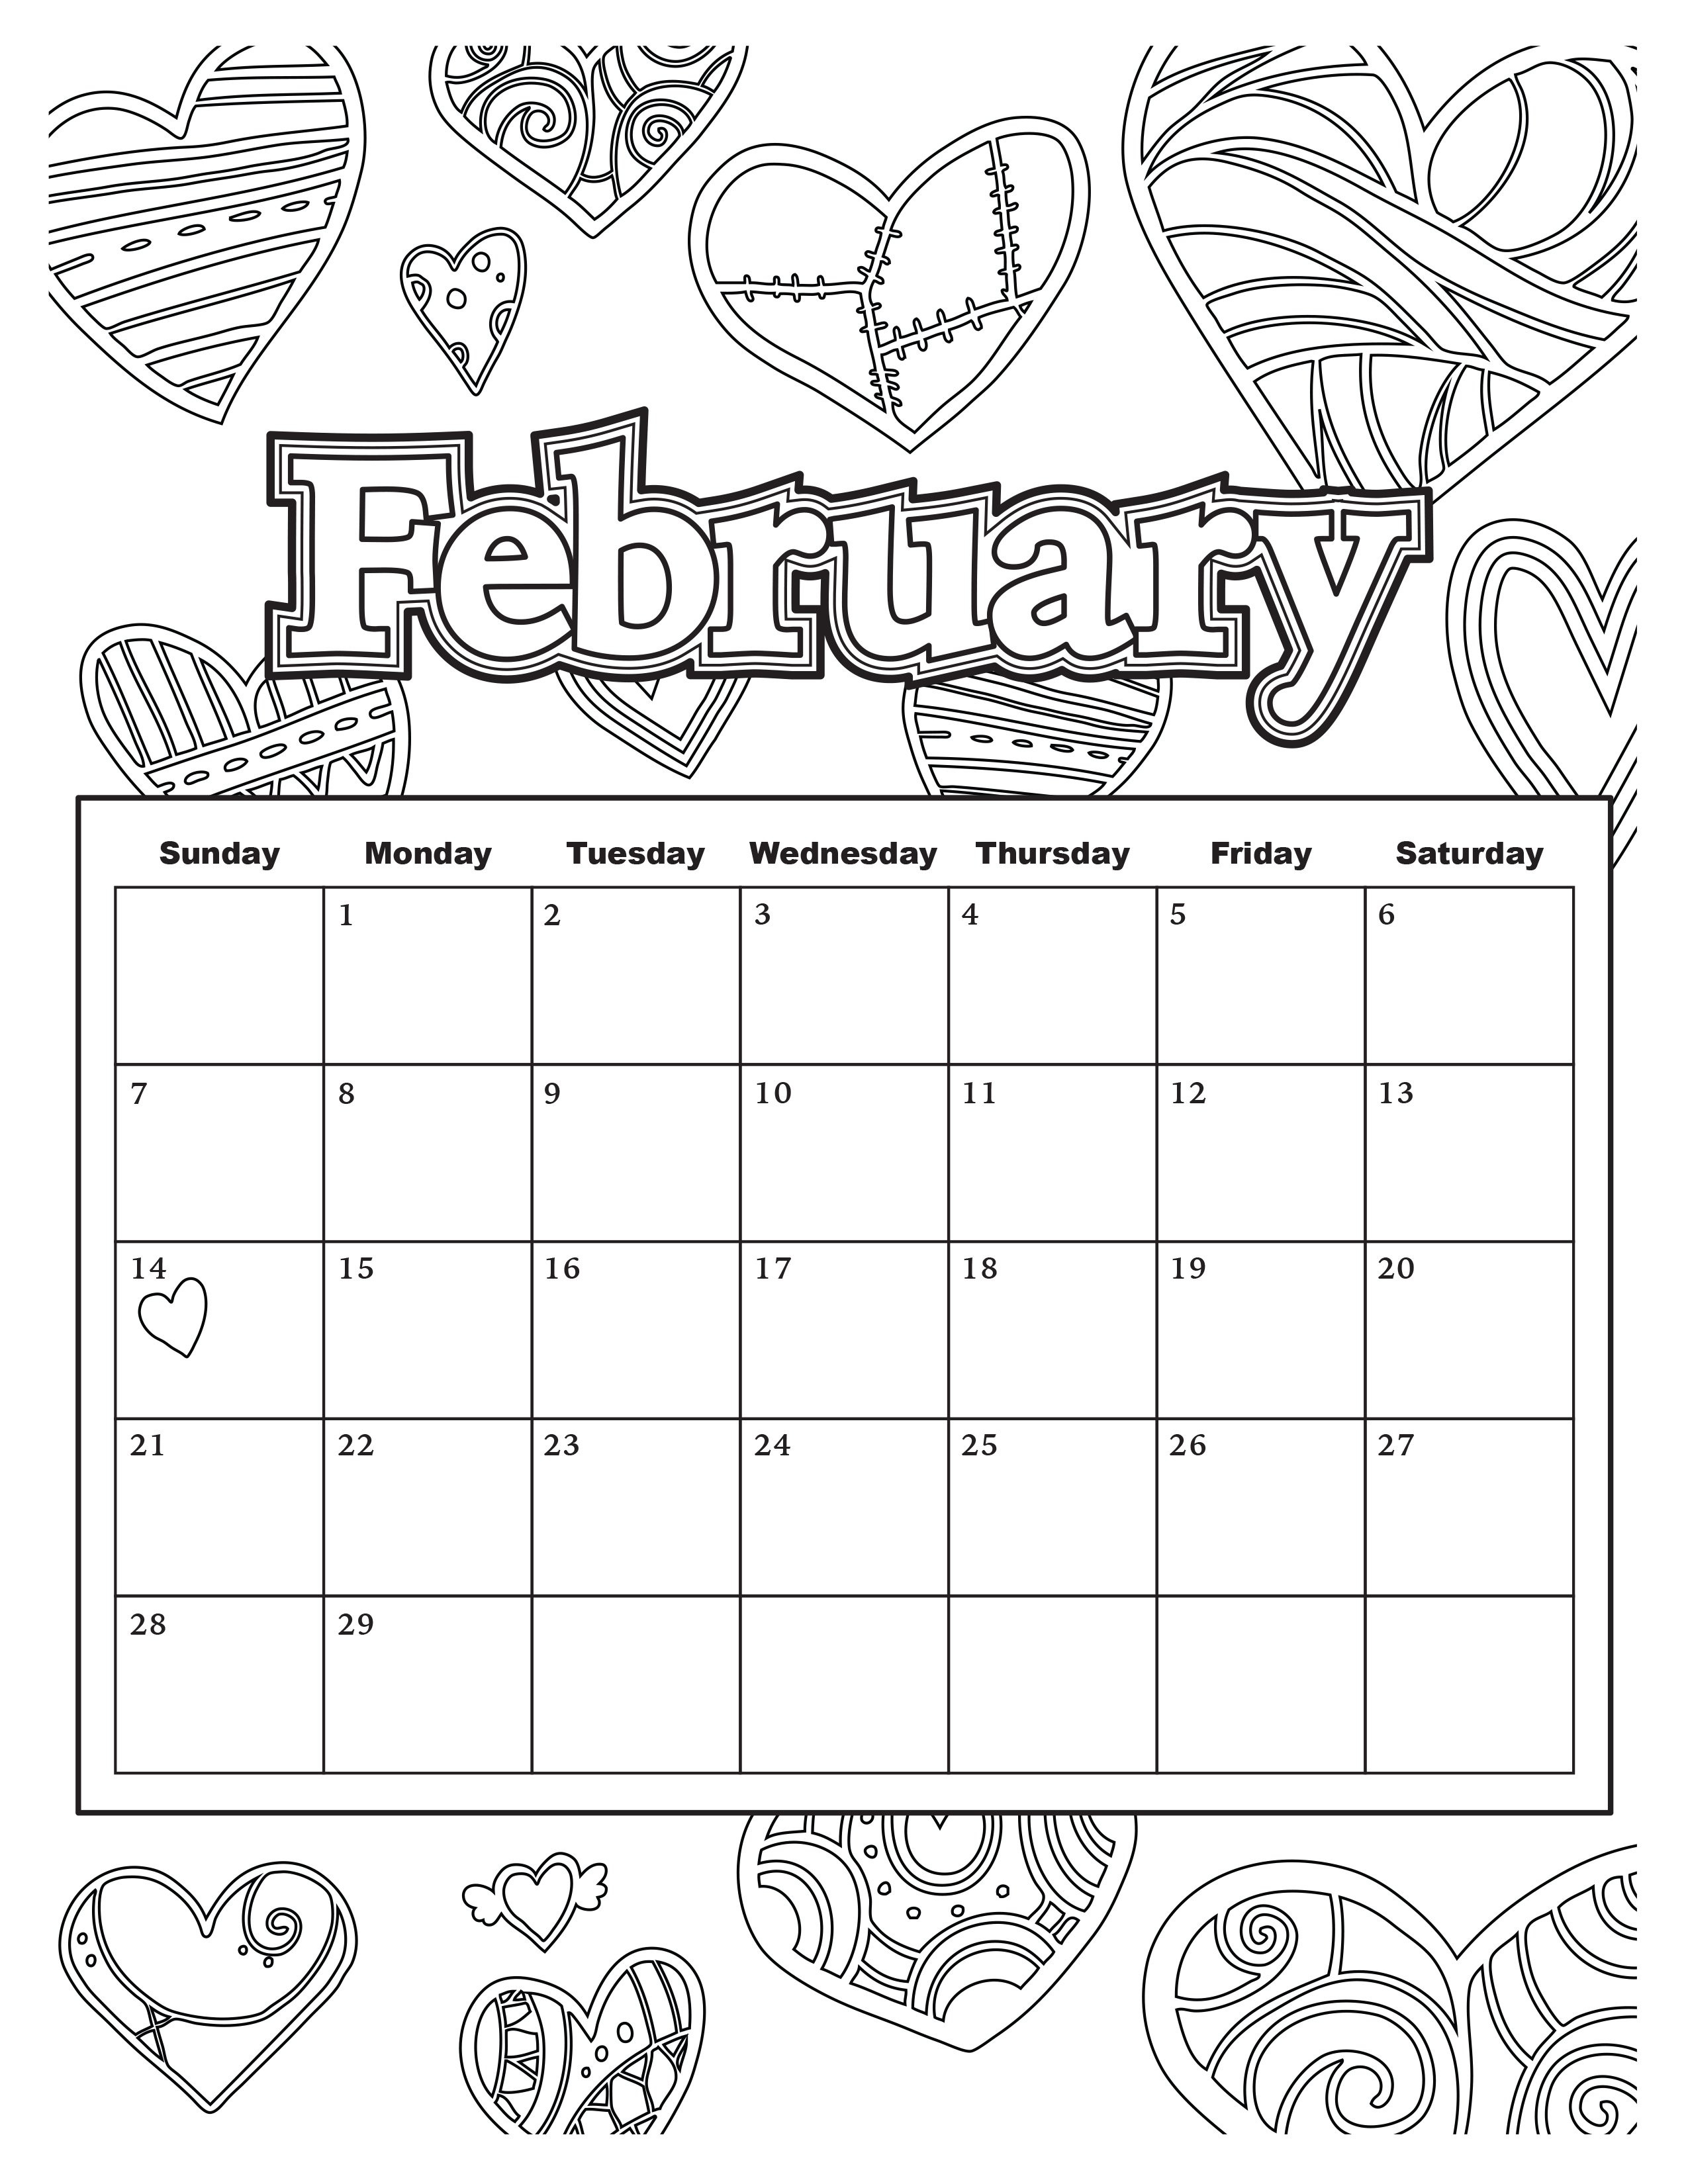 Coloring Book Calendars  Calendar With Blank To Color For Adults The Art